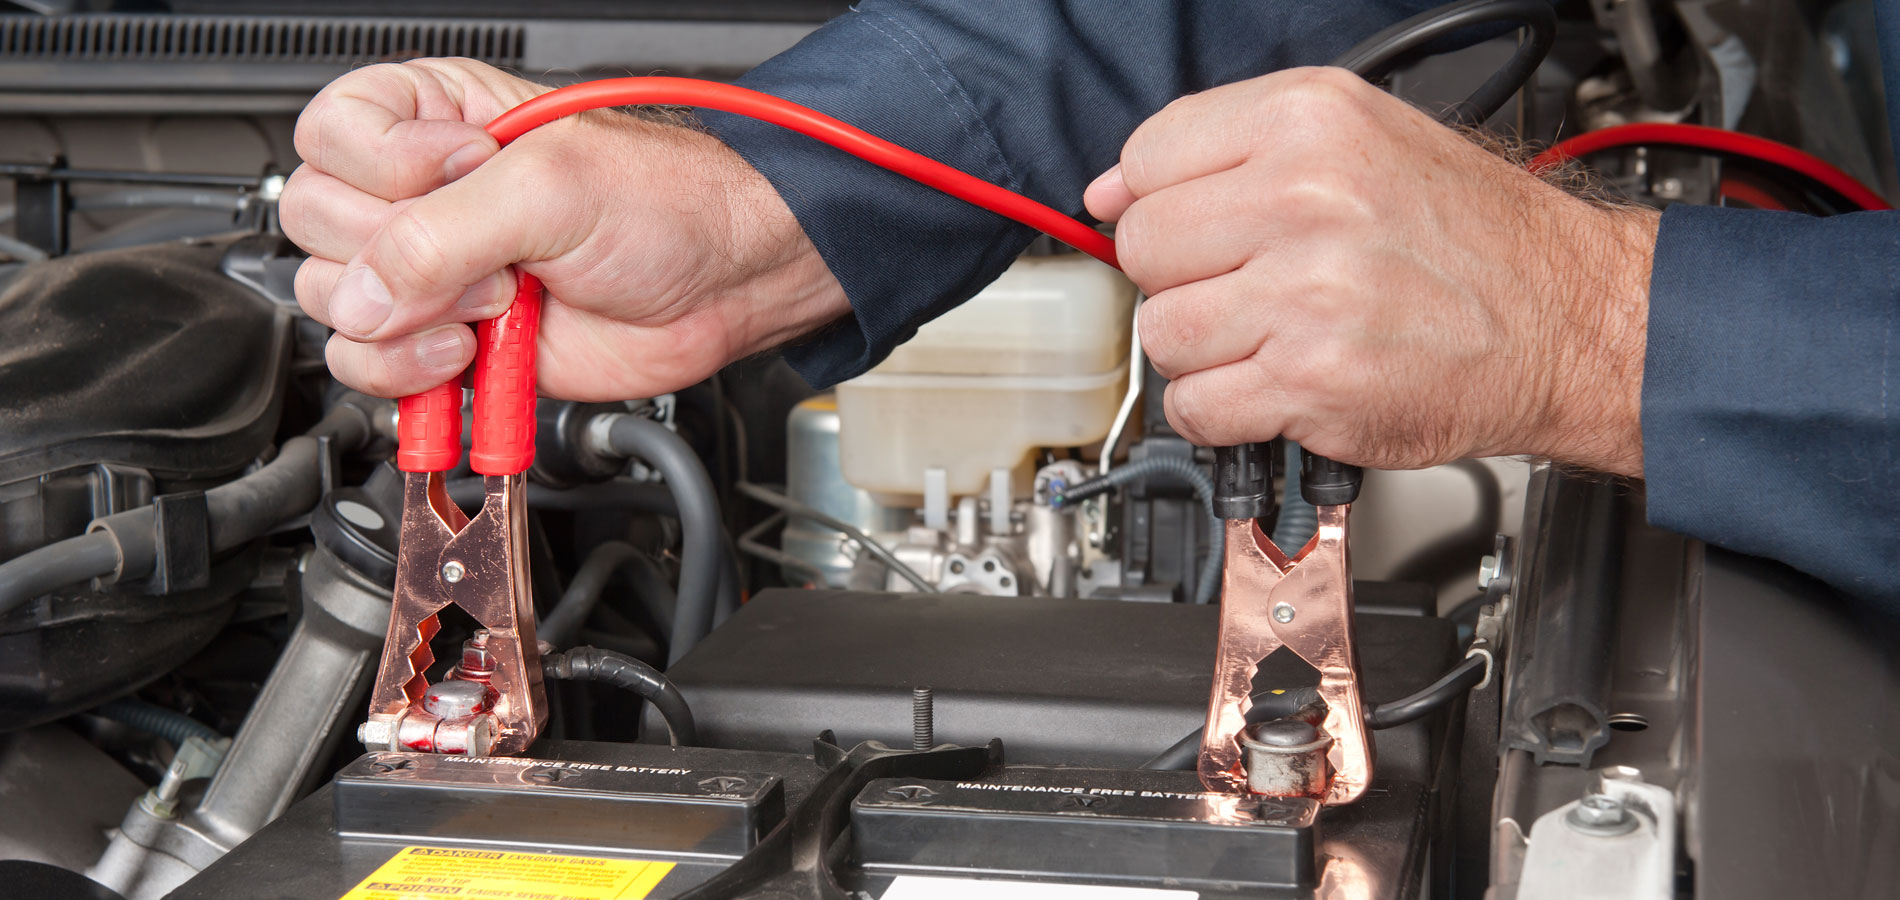 Chevrolet Sonic Repair Manual: Battery Positive and Negative Cable Replacement